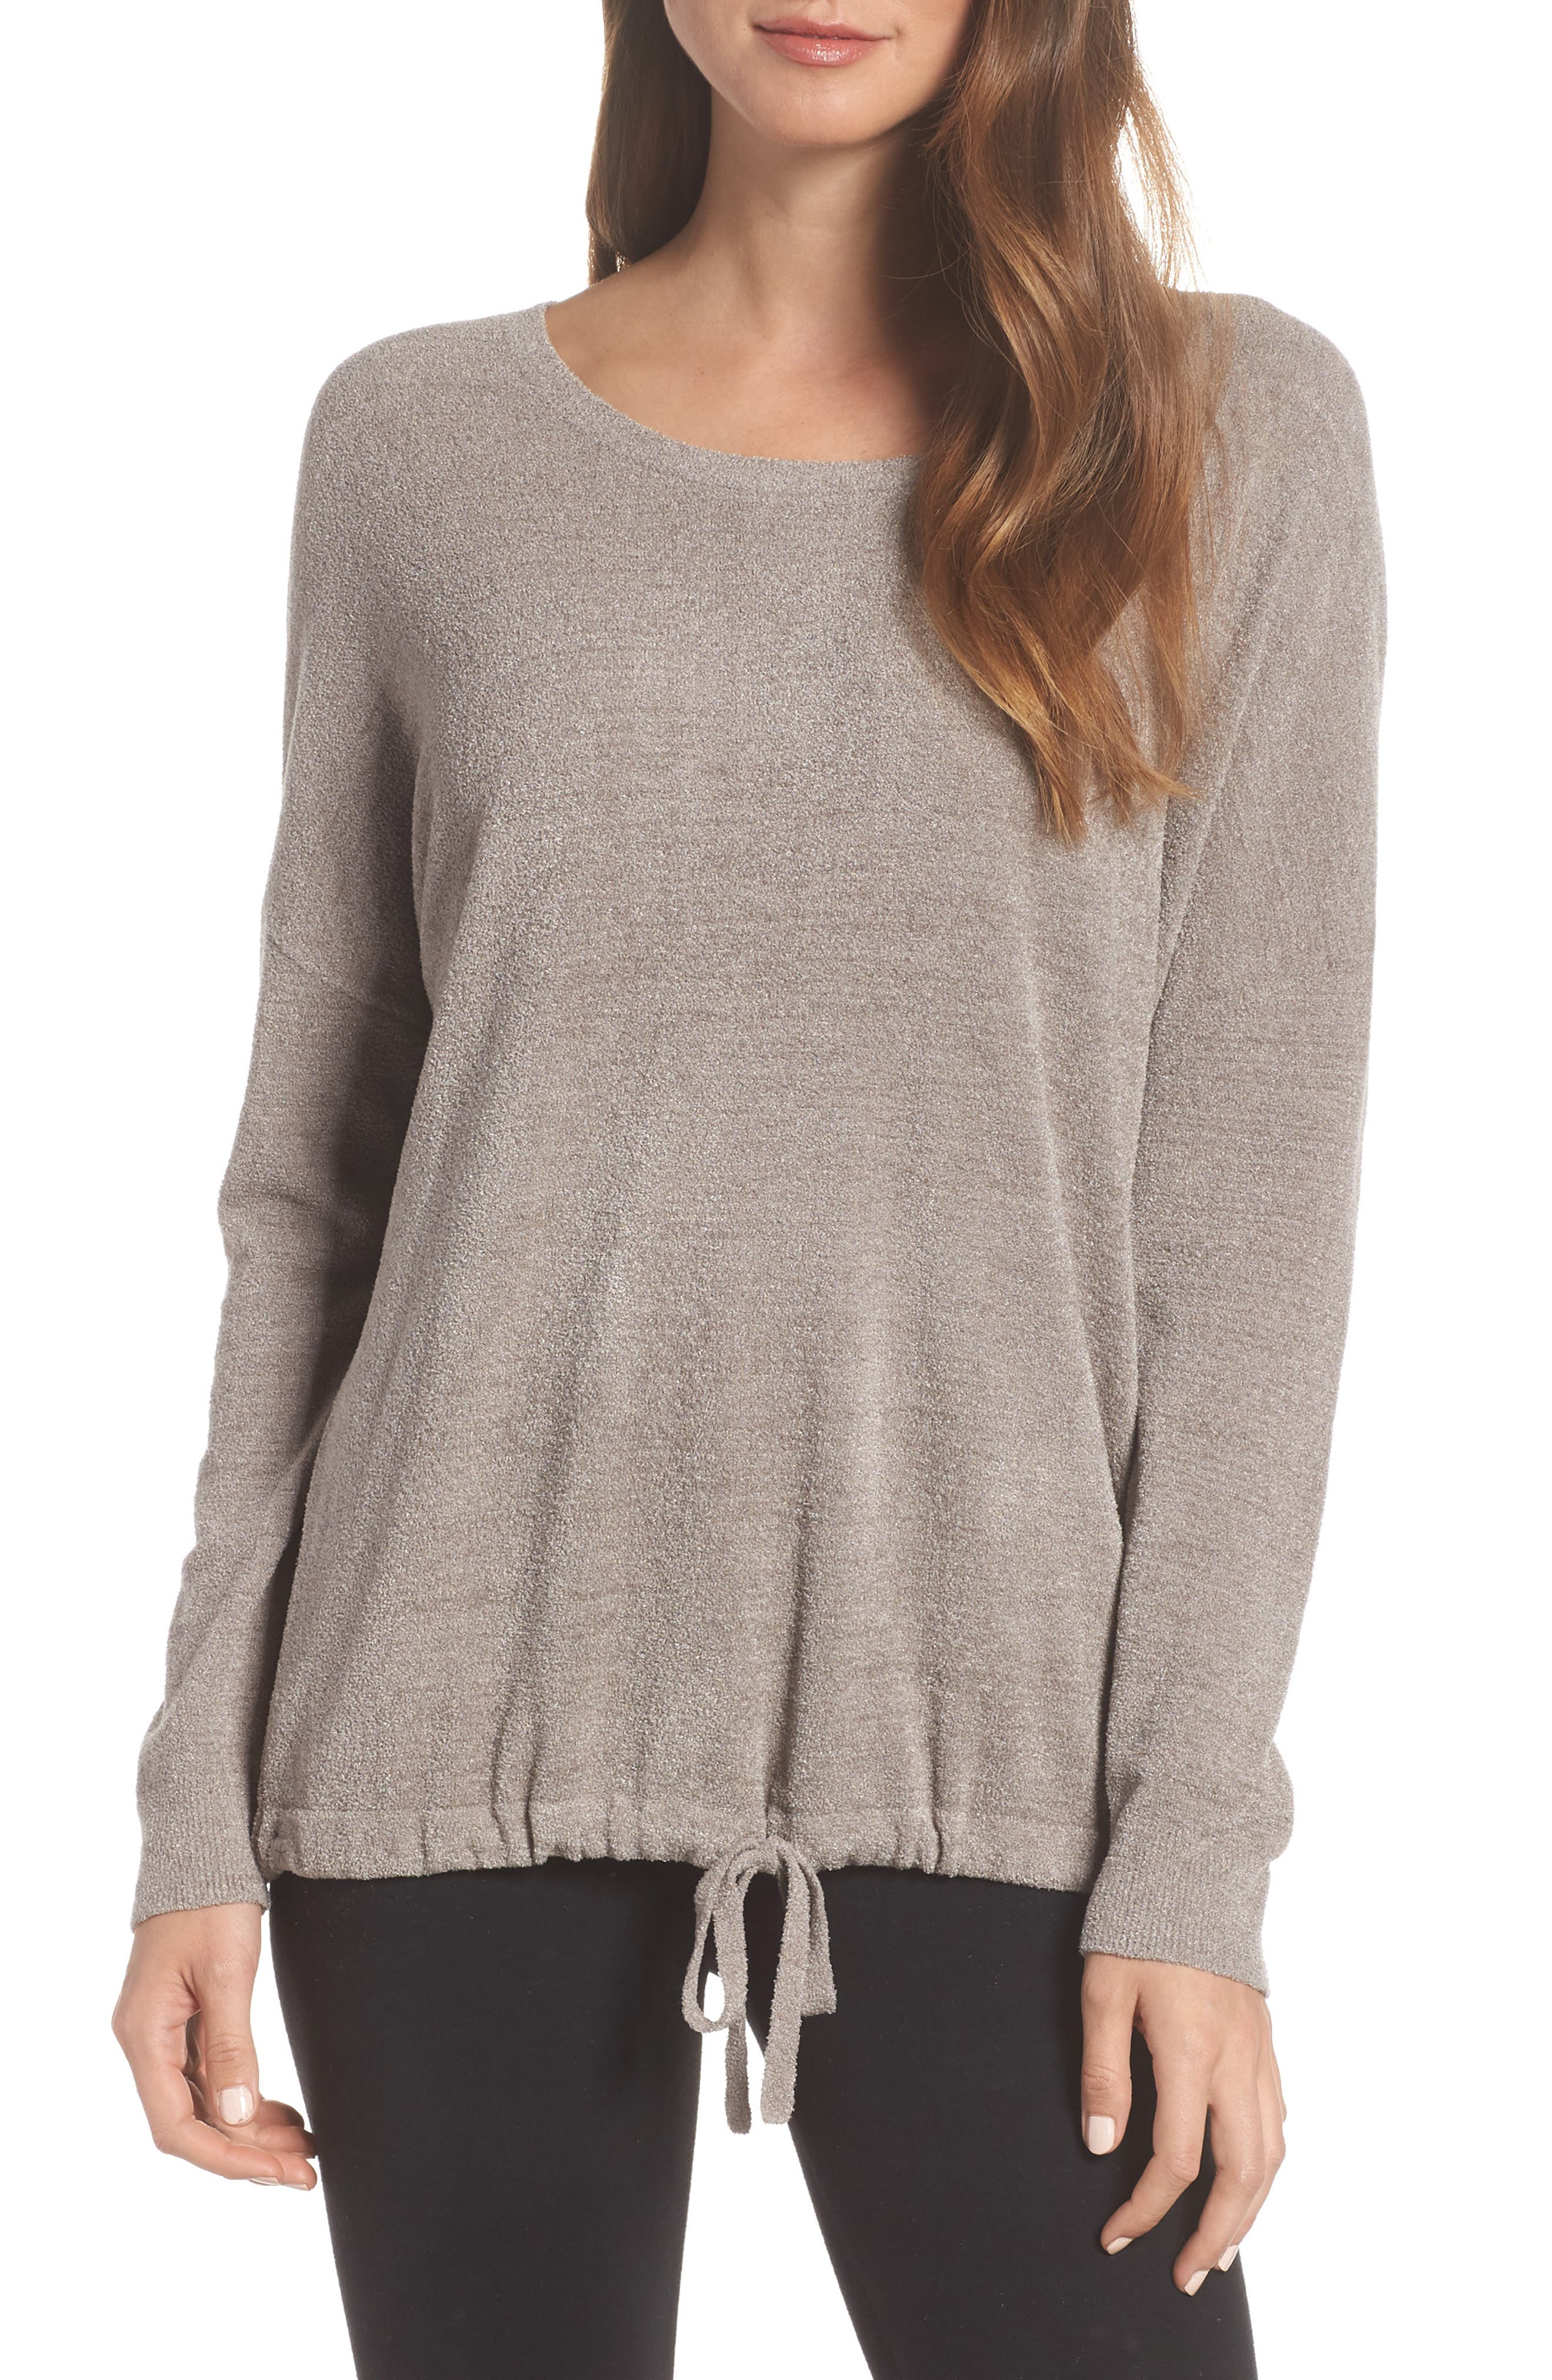 Cozychic Ultra Lite<sup>®</sup> Lounge Pullover,                             Main thumbnail 1, color,                             BEACH ROCK